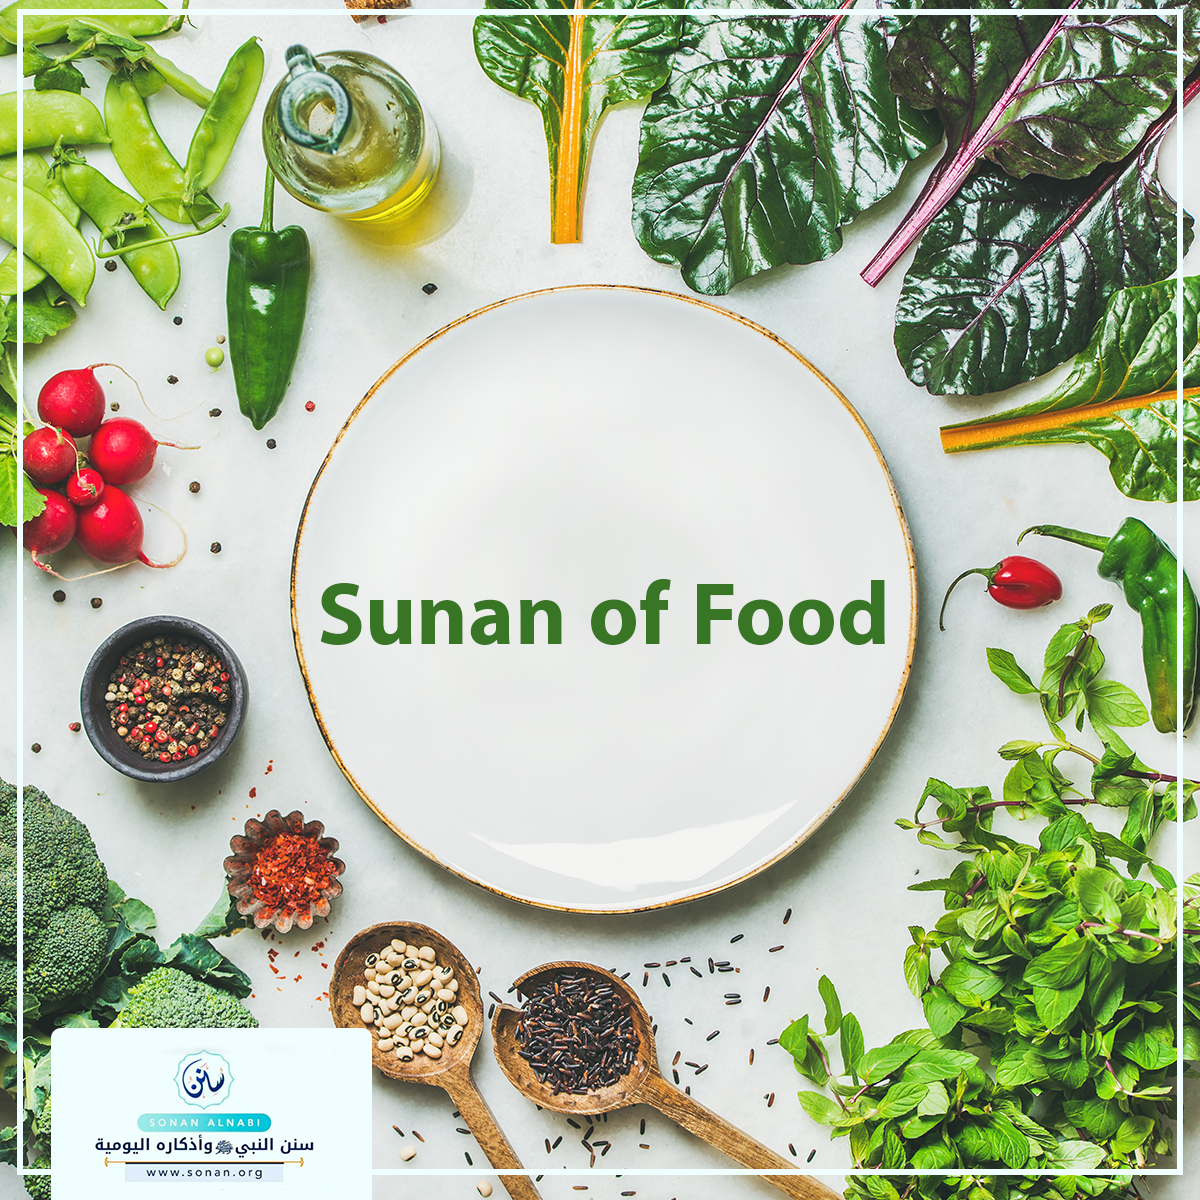 Sunan of Food